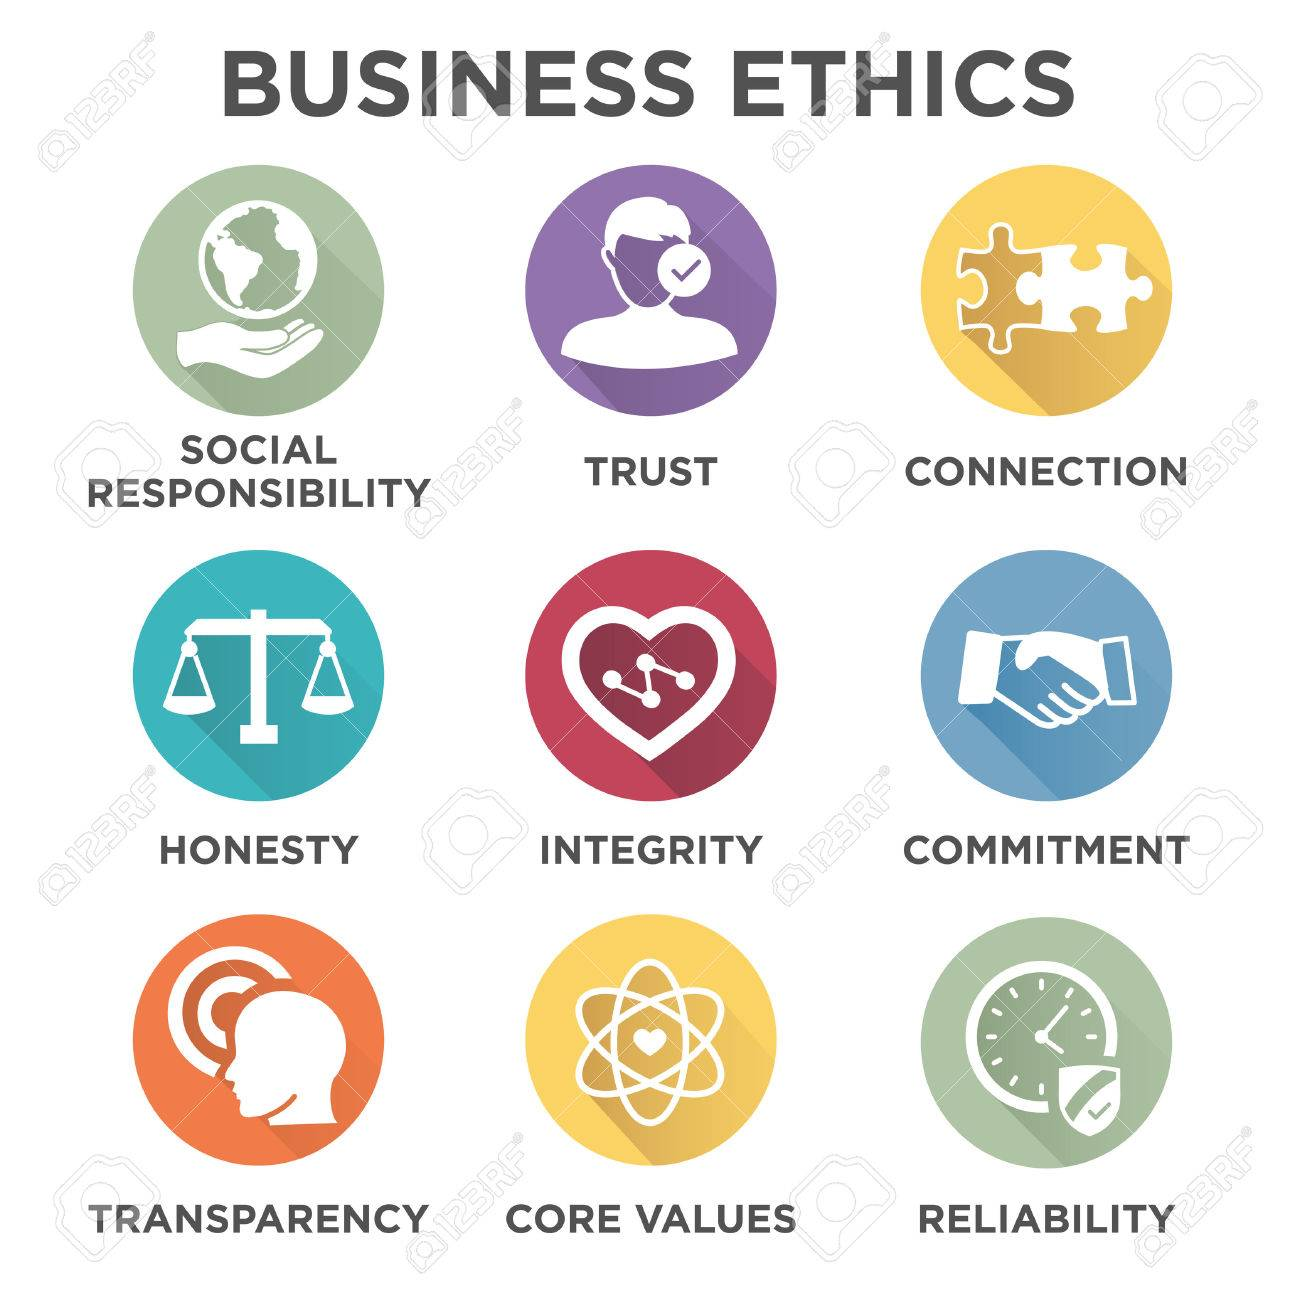 Business ethics solid icon set isolated with text royalty free business ethics solid icon set isolated with text stock vector 69369321 biocorpaavc Image collections